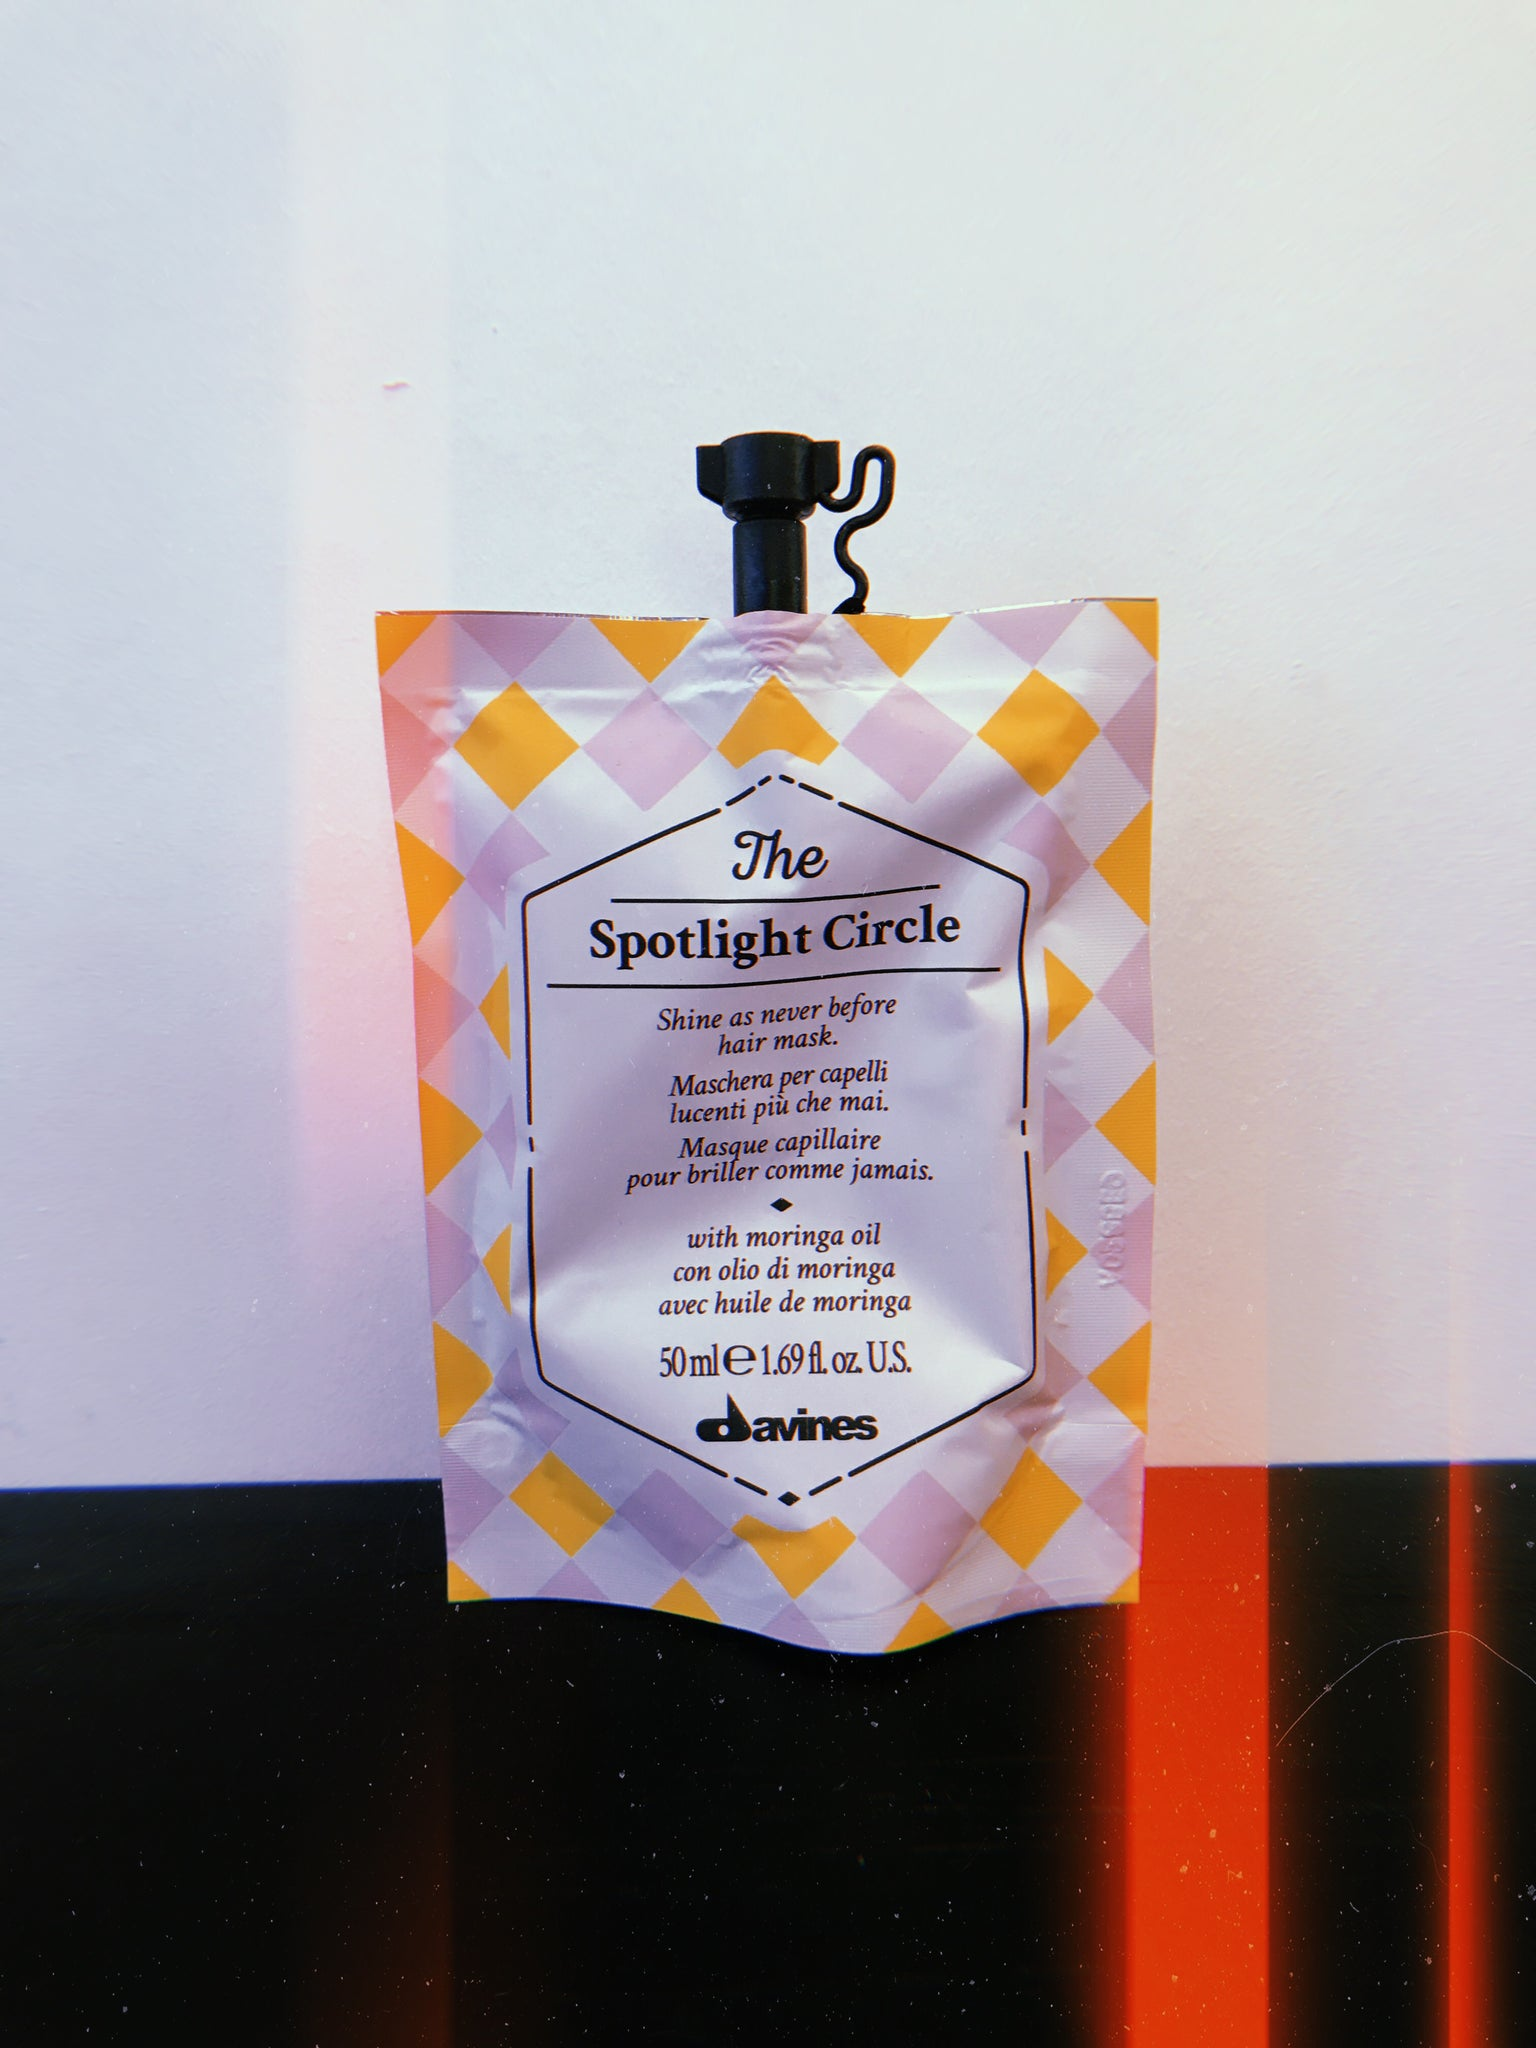 The Spotlight Circle of Chronicles Hair Mask